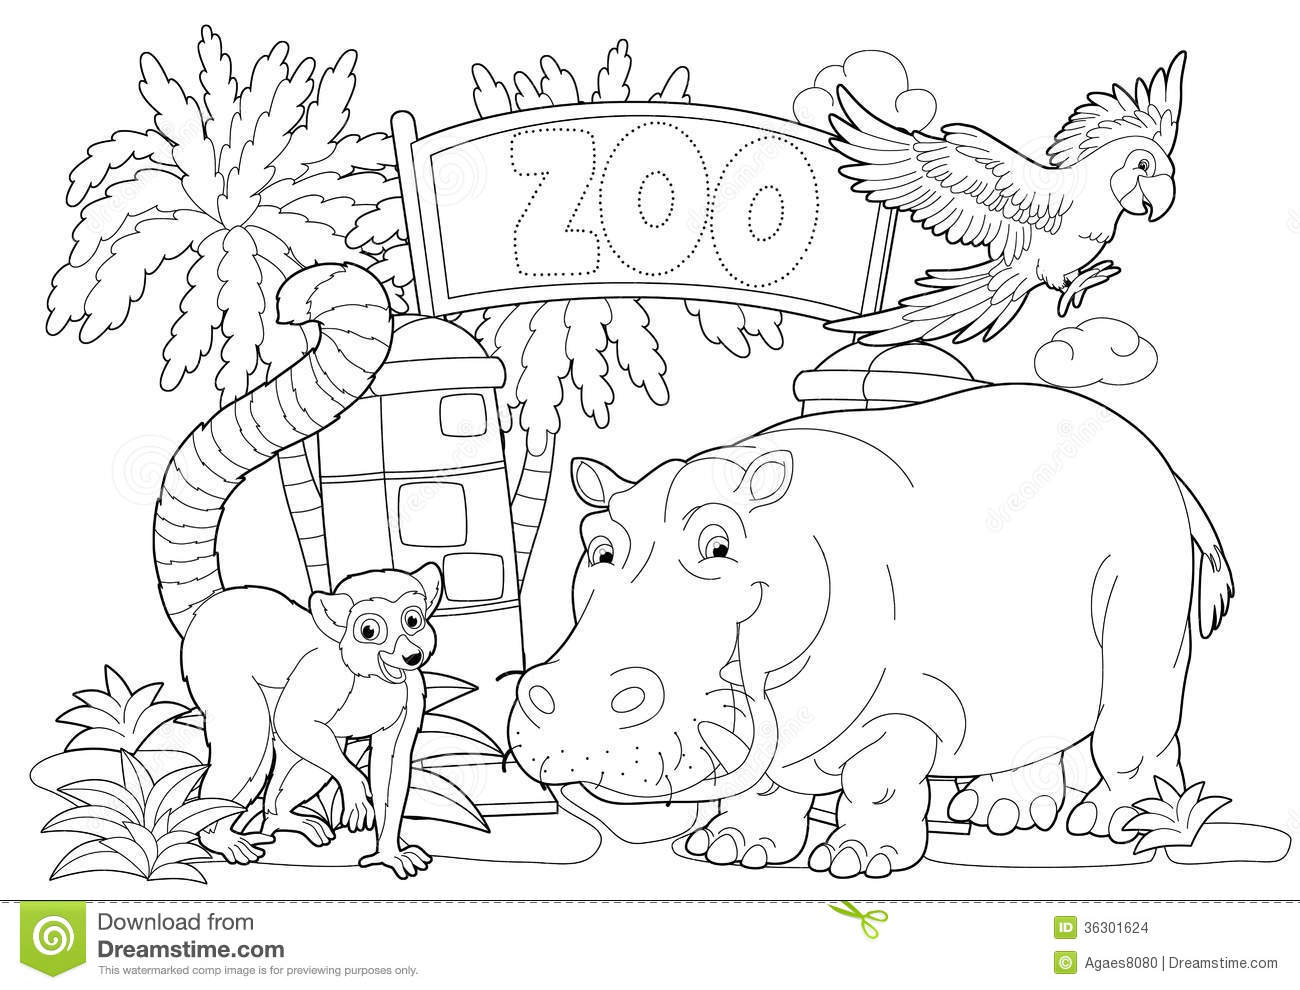 Free coloring pages zoo - Royalty Free Stock Photo Download Coloring Page The Zoo